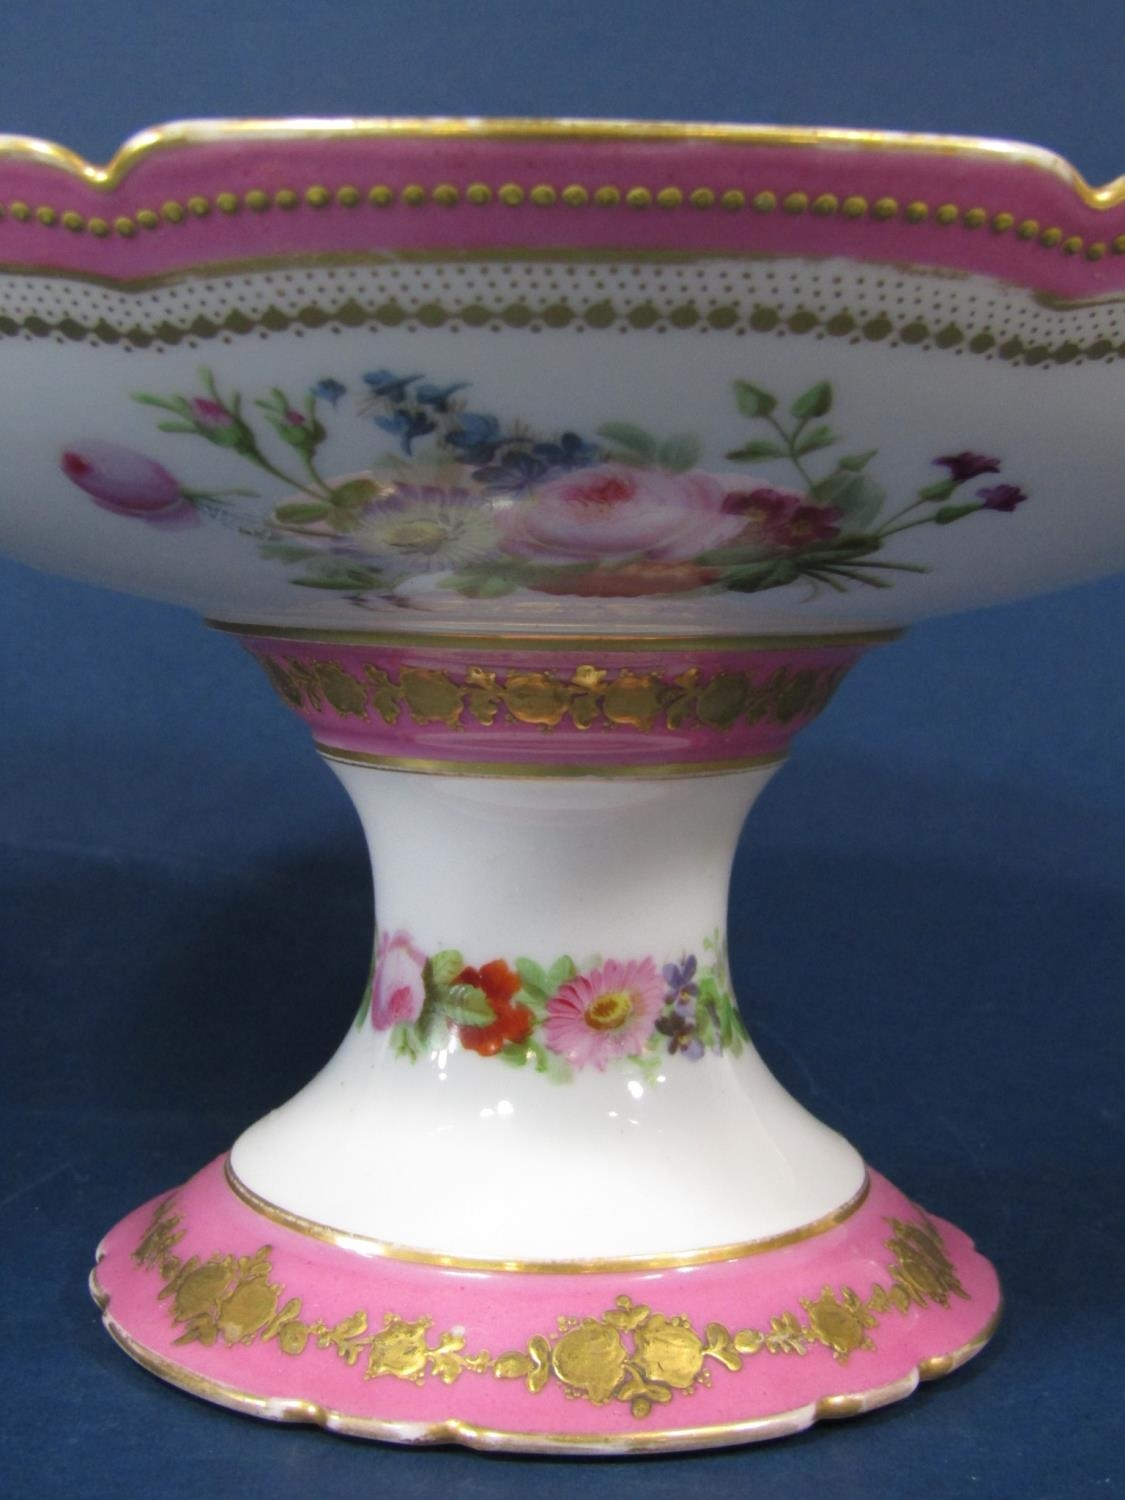 A matched pair of 19th century pink ground comports, one with reserved painted panels of chateaux, - Bild 4 aus 4